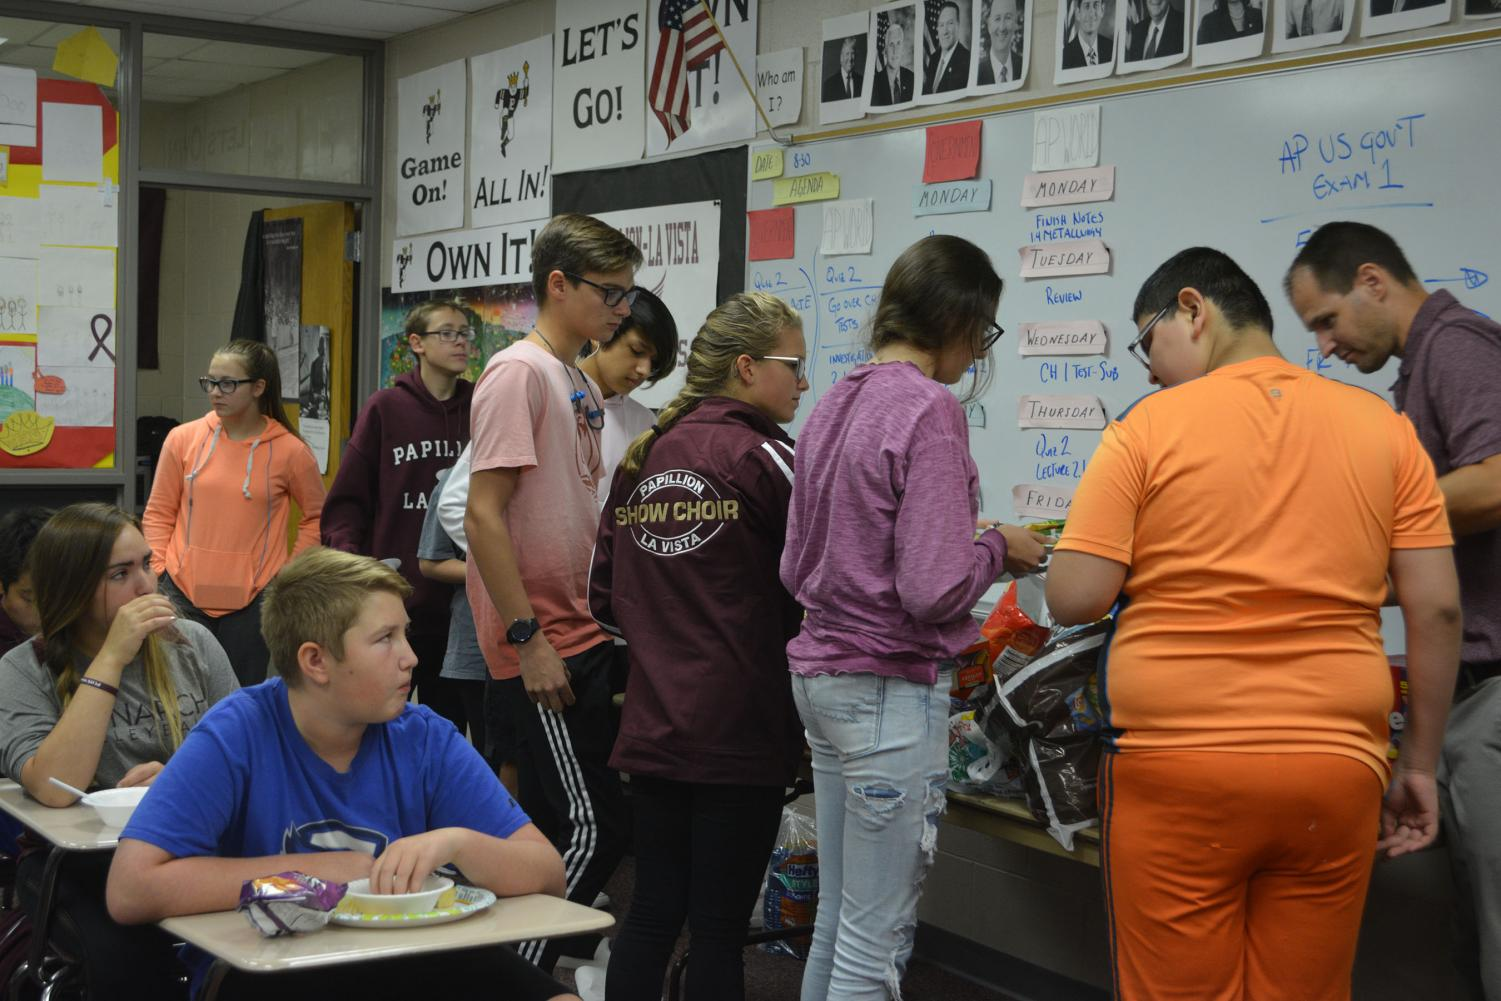 The freshman and seniors in the program plan food days. They both brought food for everyone in the advisement to eat.